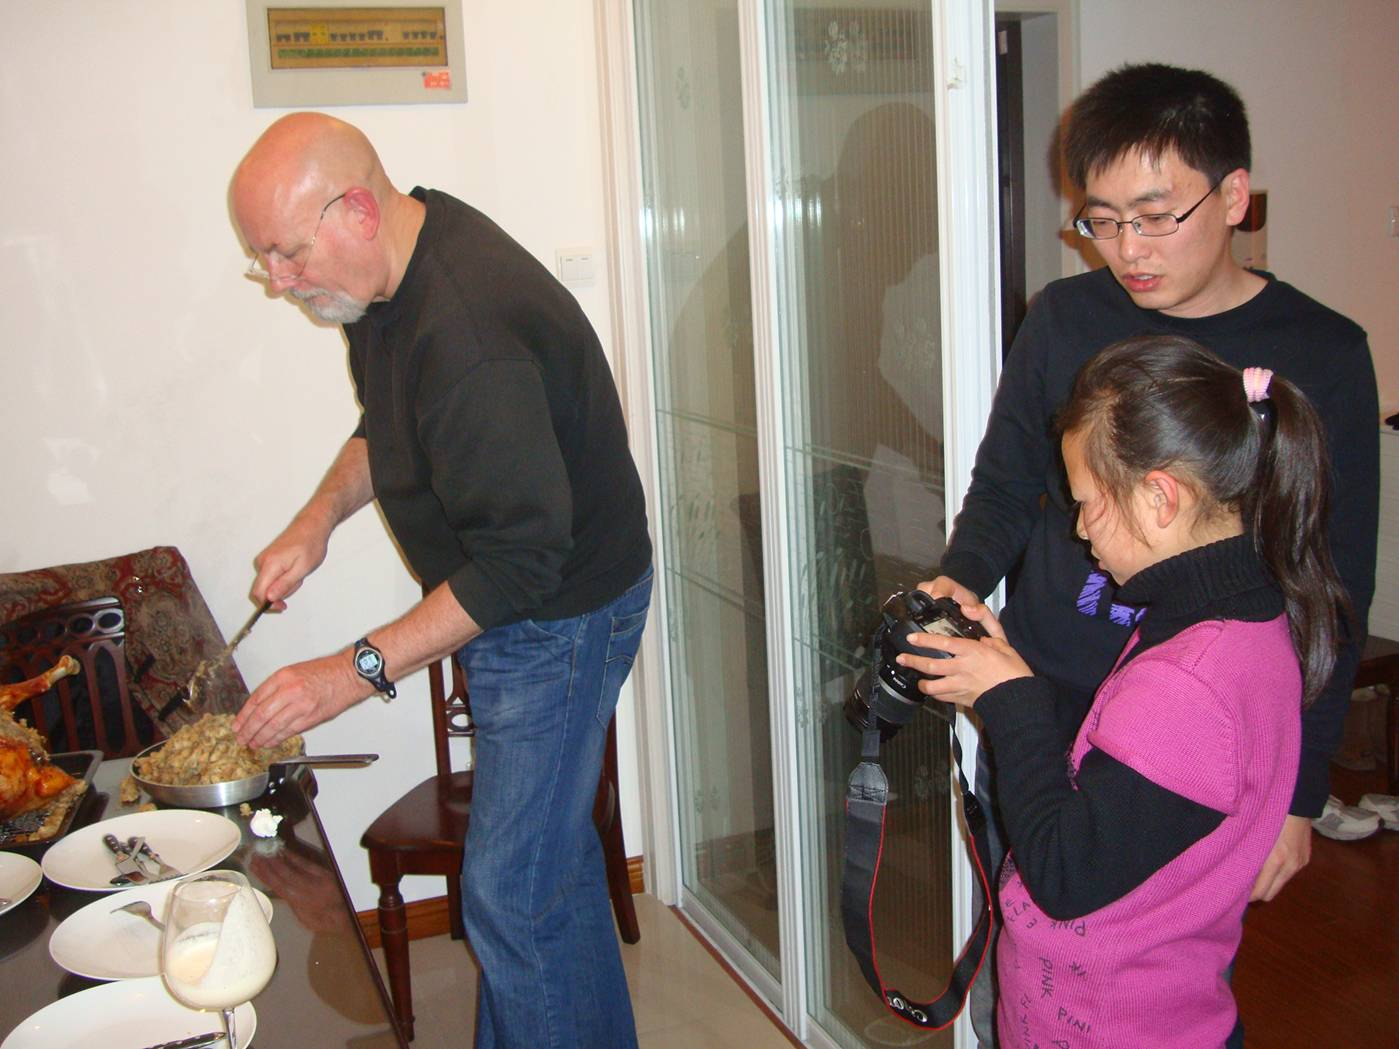 Picture:  Every event needs documentation.  Rob ladles out the stuffing while a very serious seven year old refines her camera technique. Christmas in Nantong, China